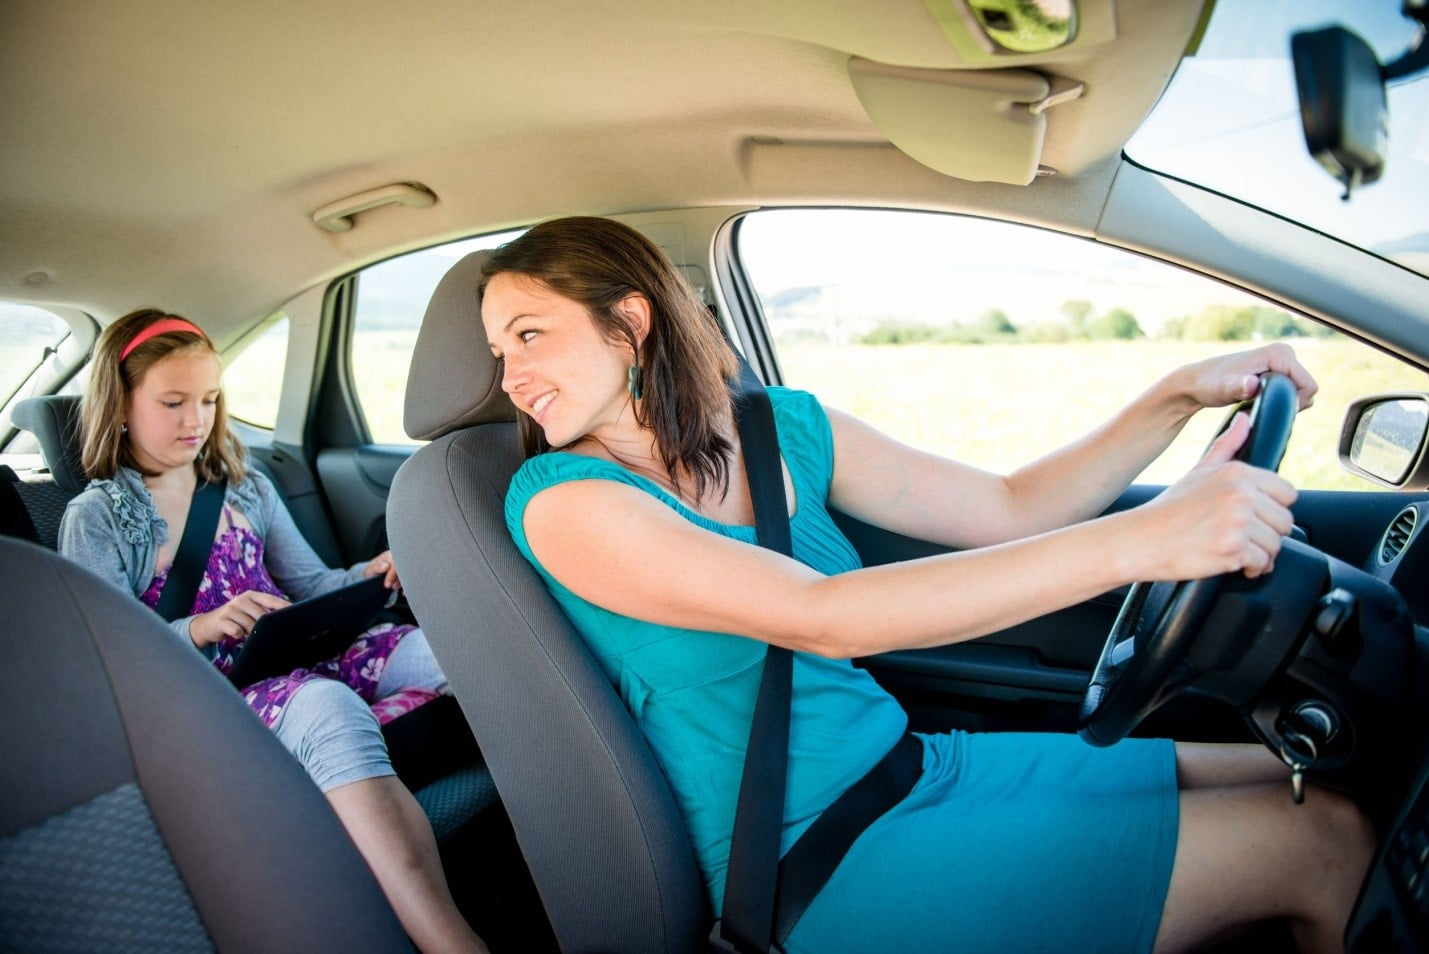 How Seatbelts Save Lives